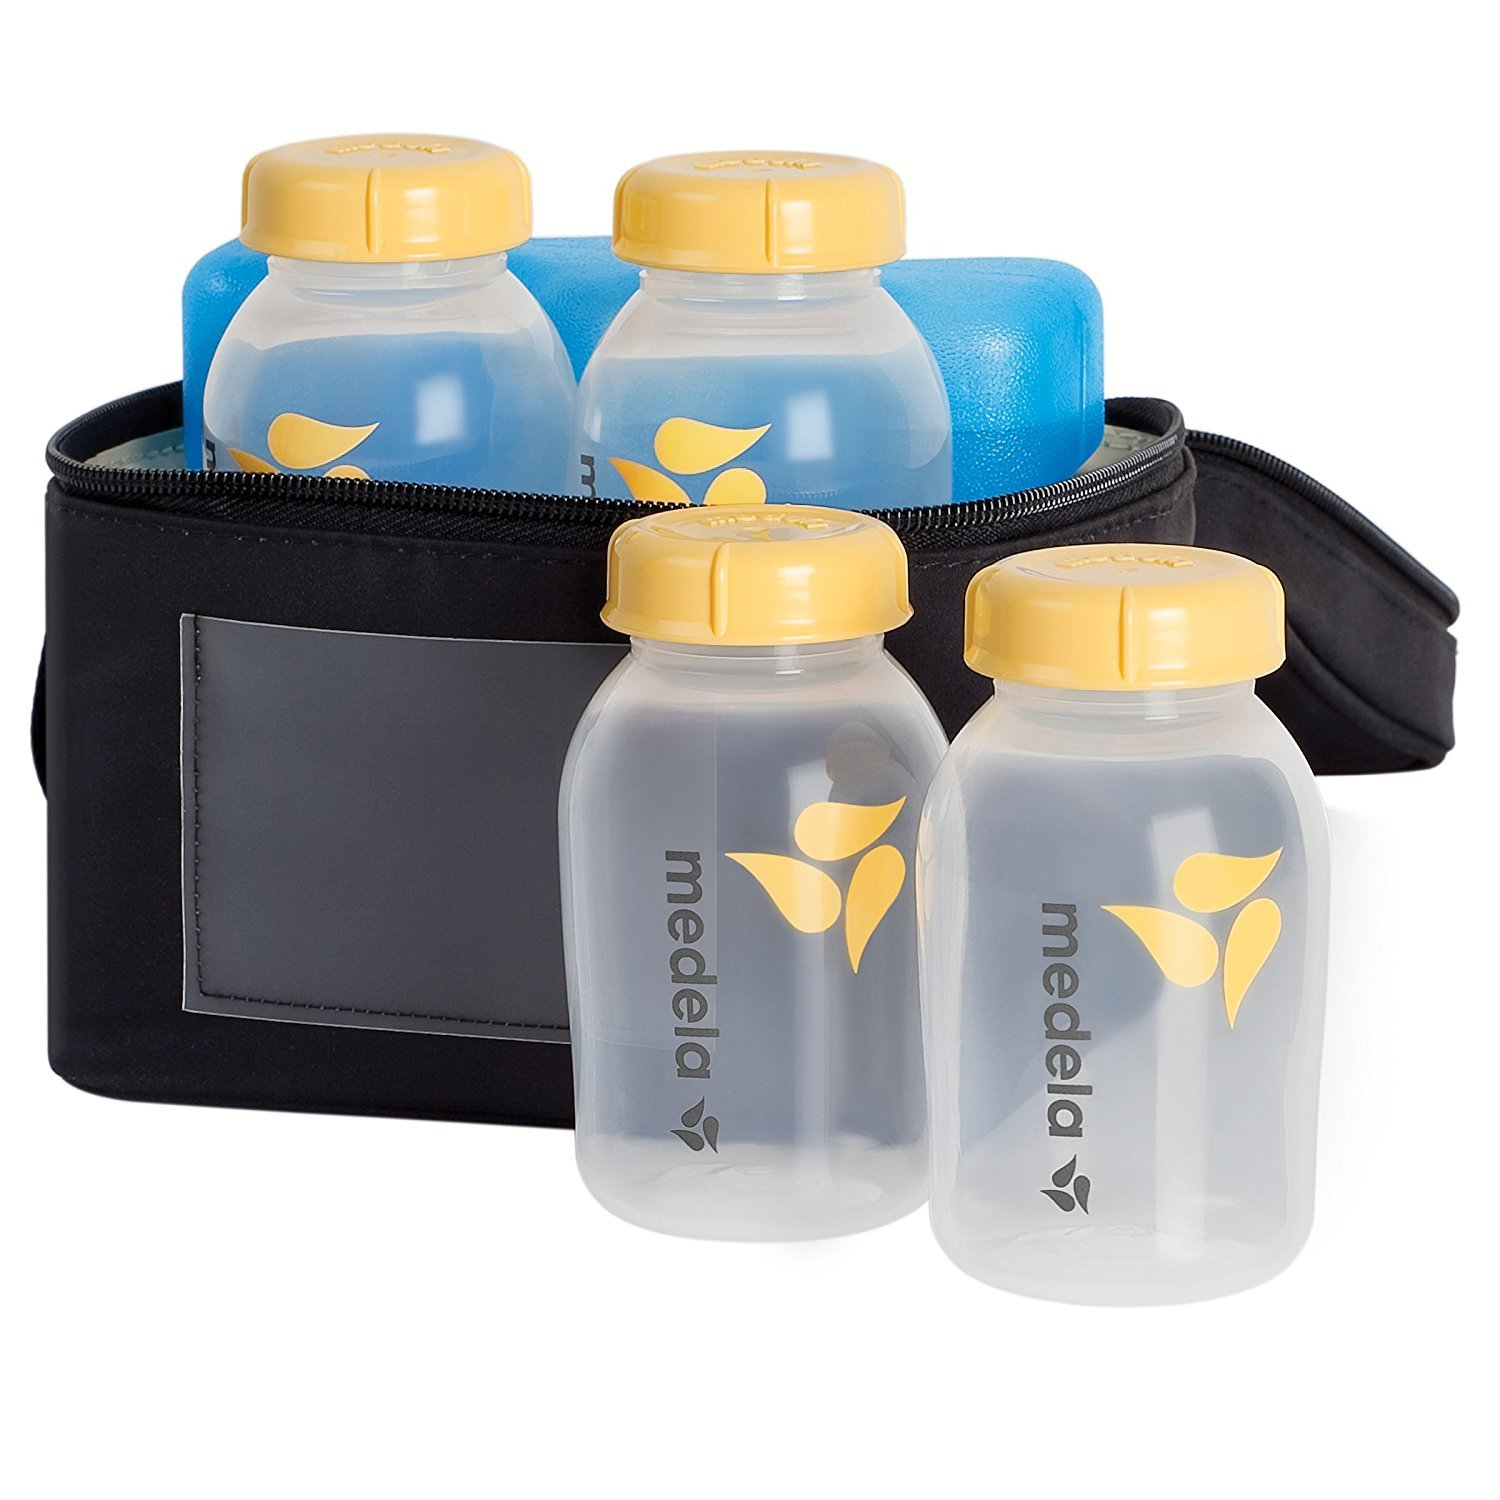 Medela Breastmilk Cooler Set by Medela   B01D7PQW8I